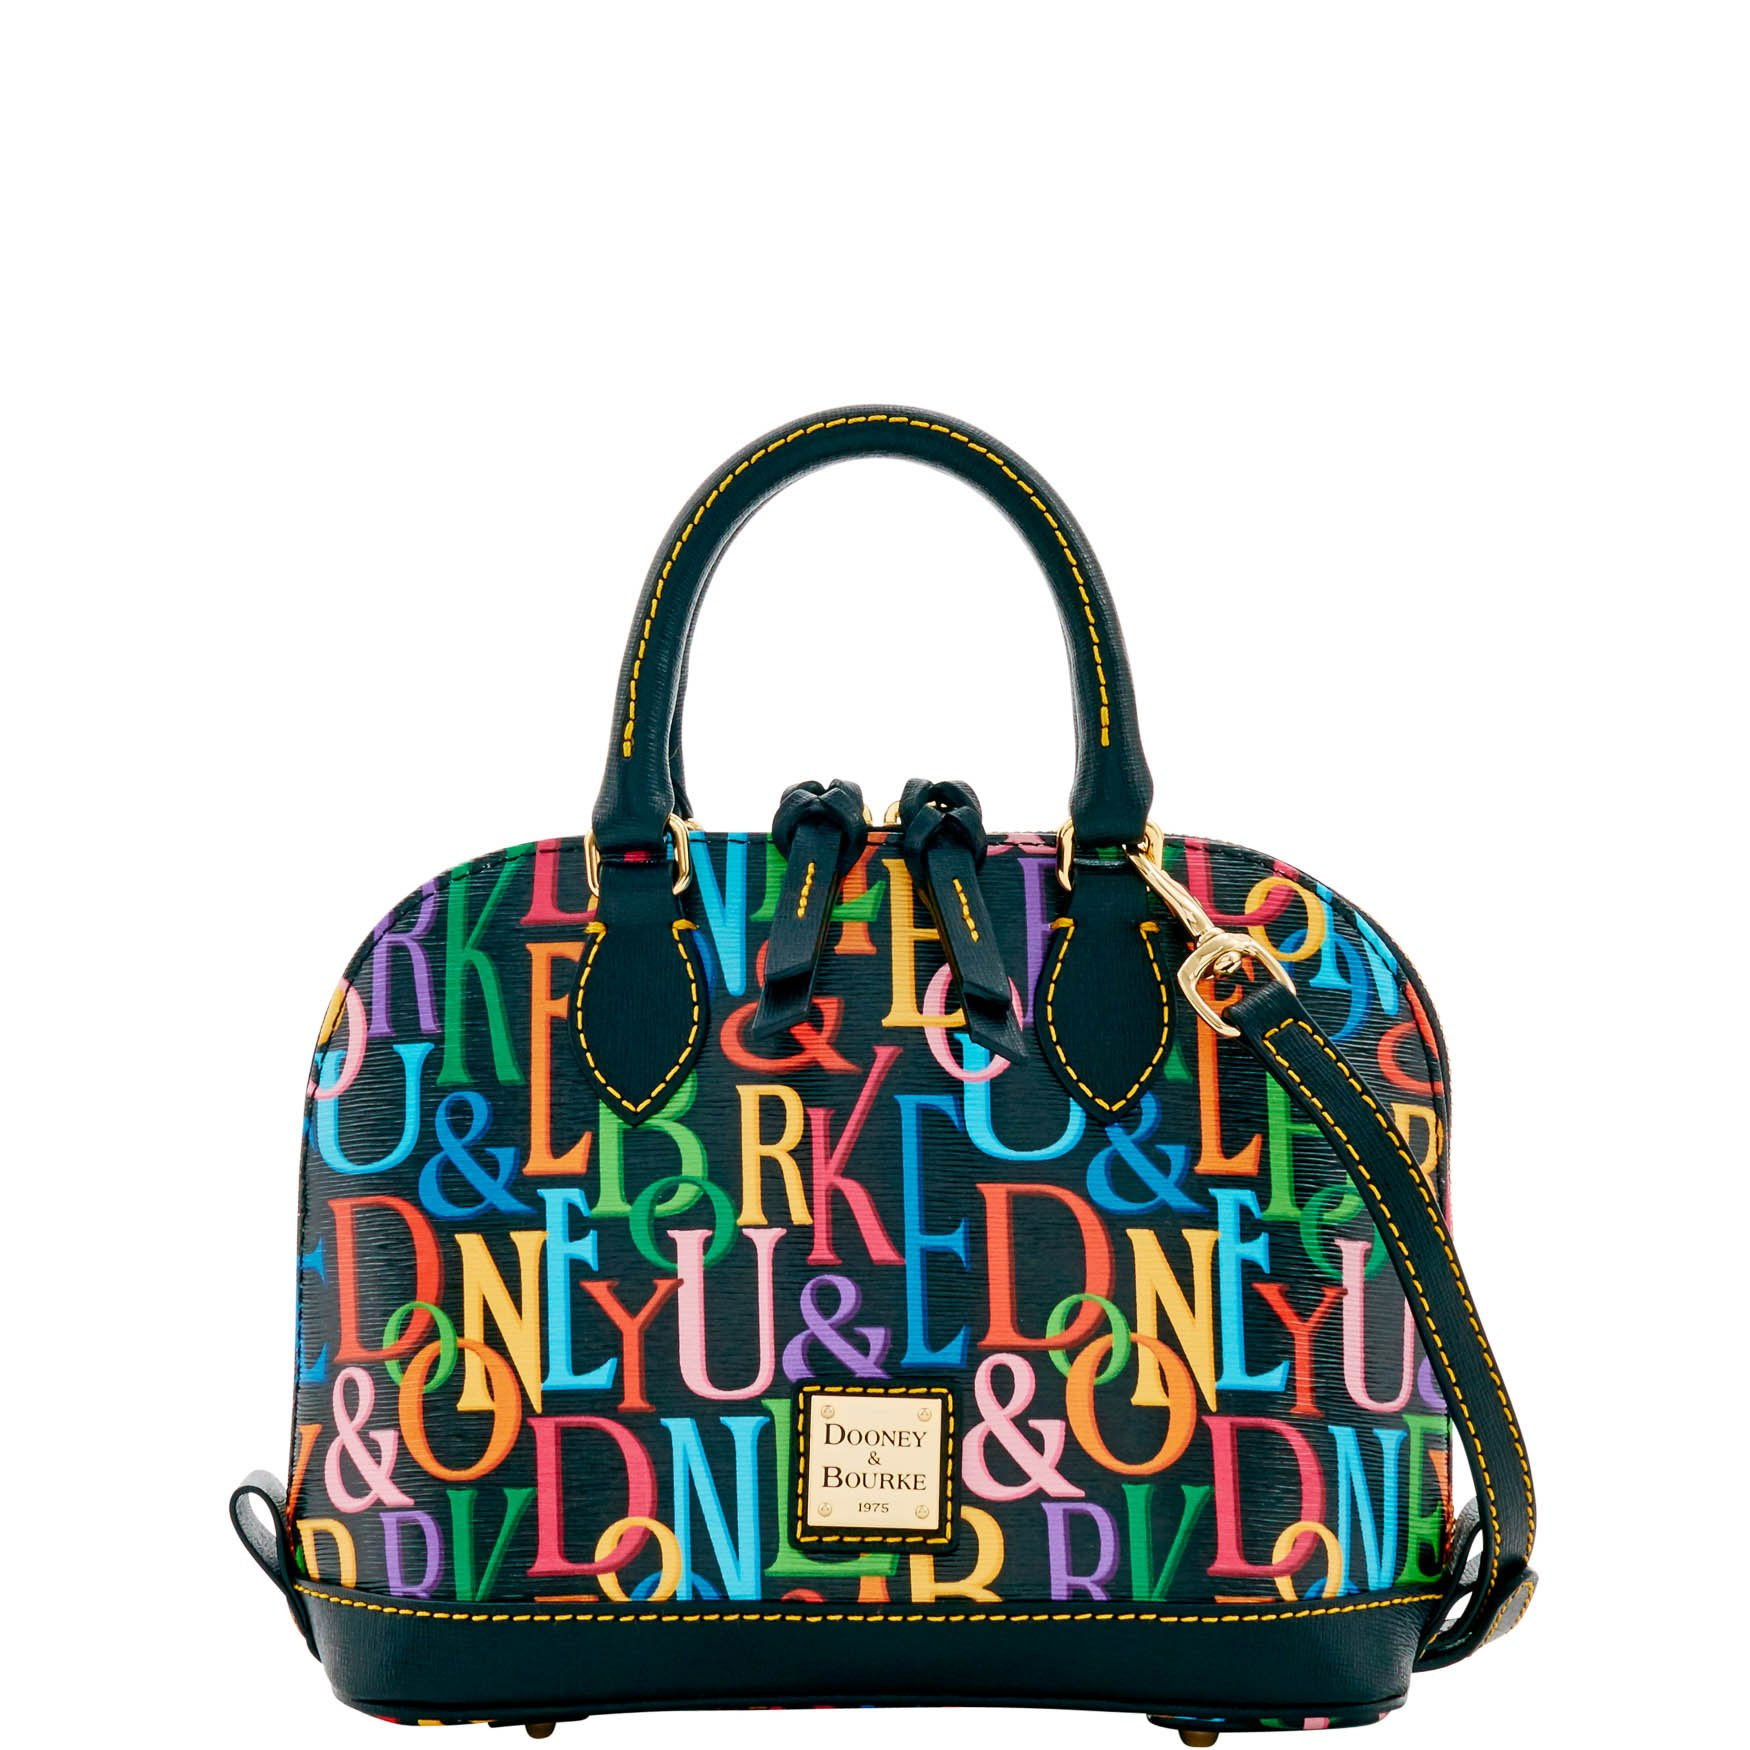 Dooney & Bourke DB Retro Bitsy Bag